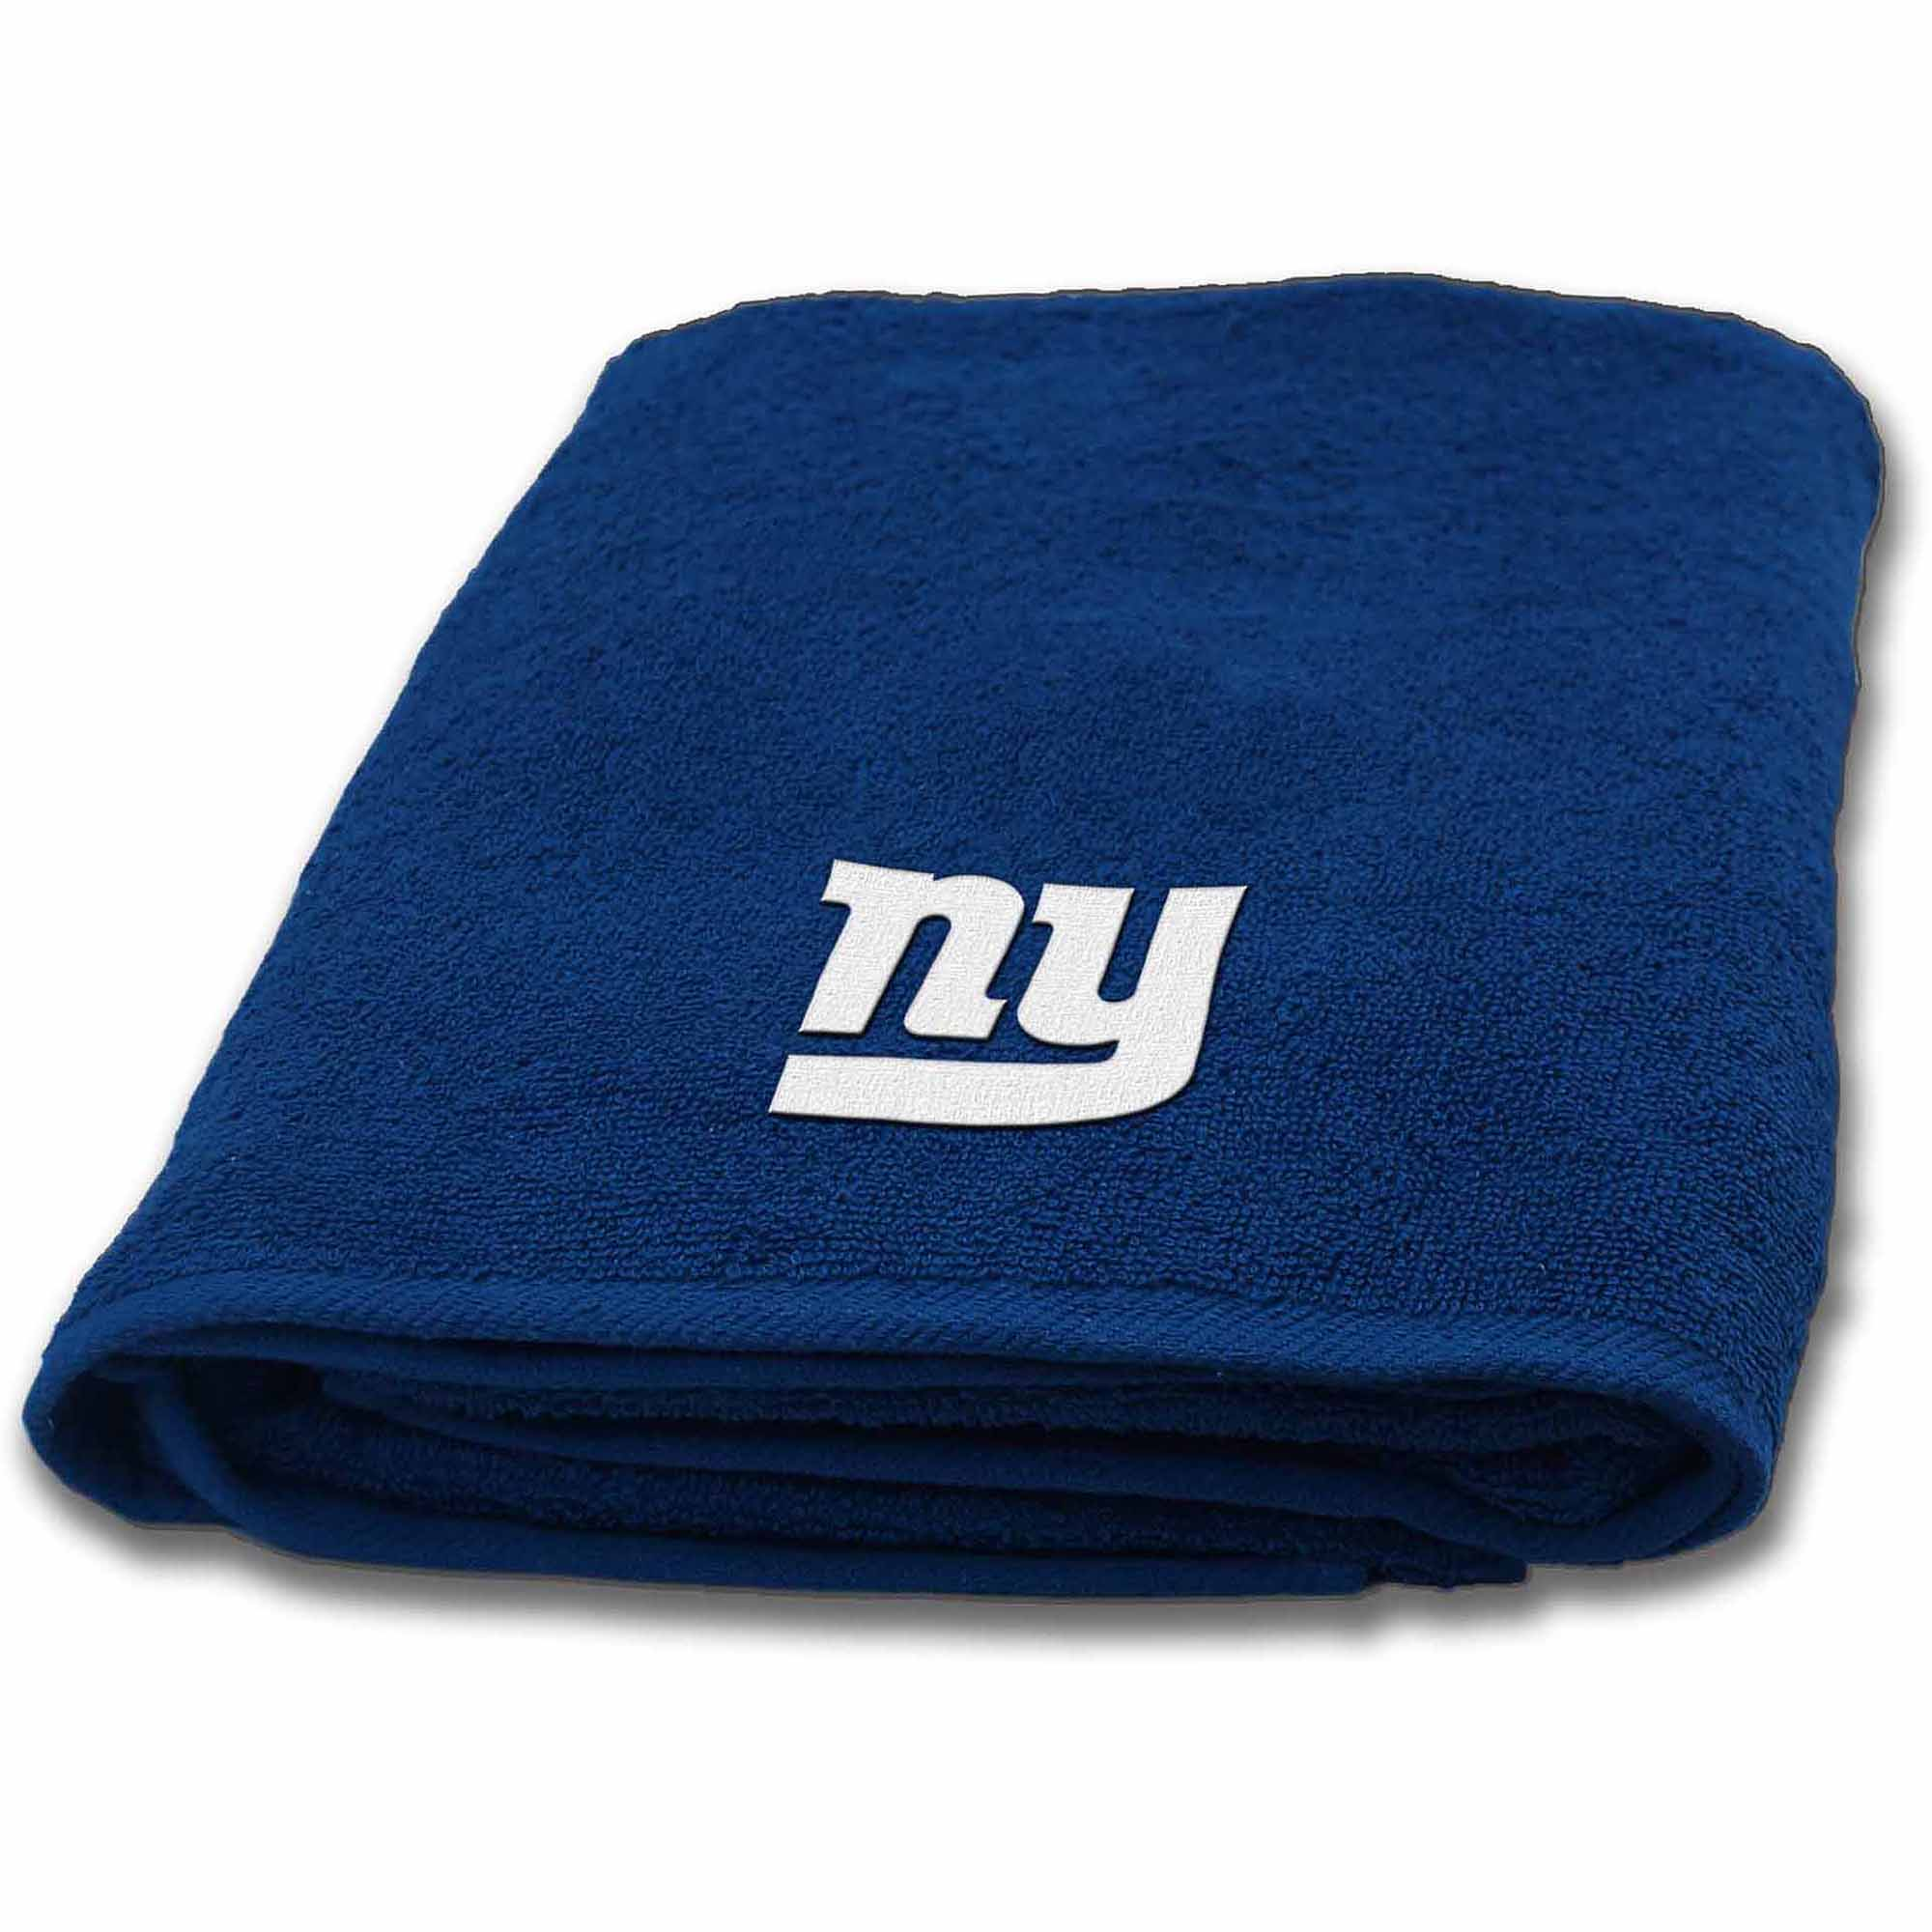 NFL New York Giants Decorative Bath Collection - Bath Towel